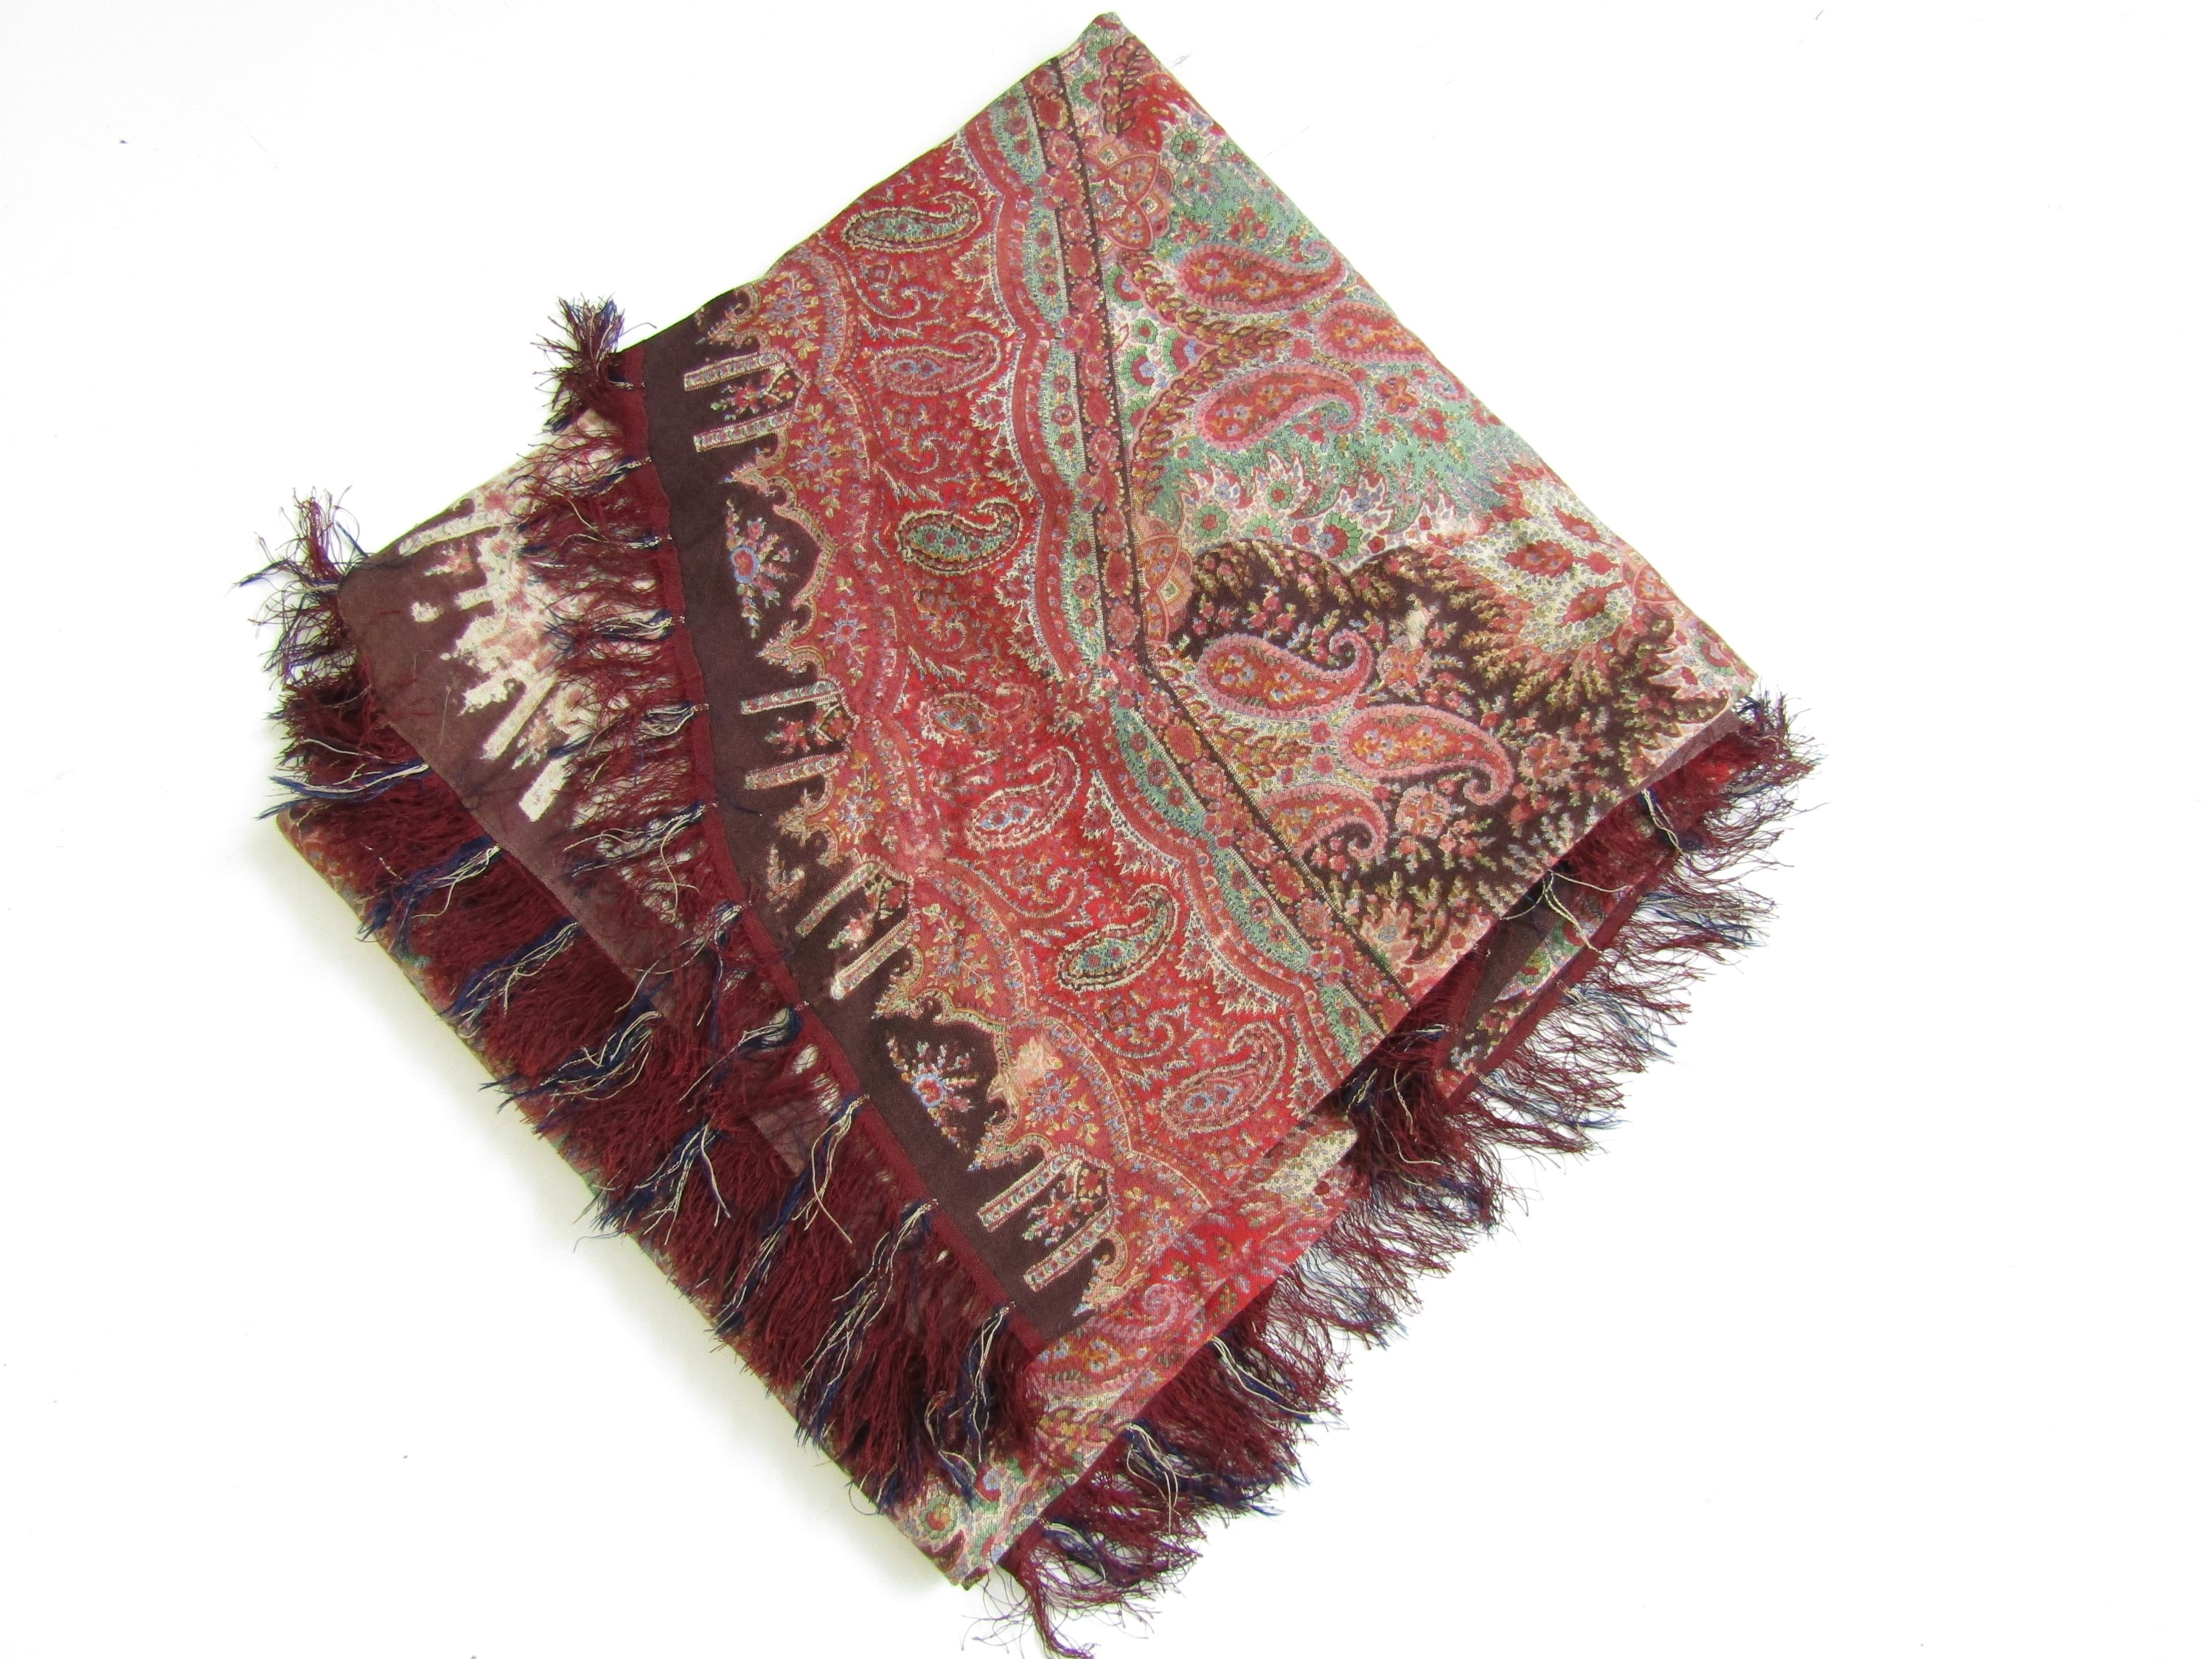 Lot 43 - A 19th Century printed paisley shawl, with curved and tasselled lower edge, 330 x 180 cm